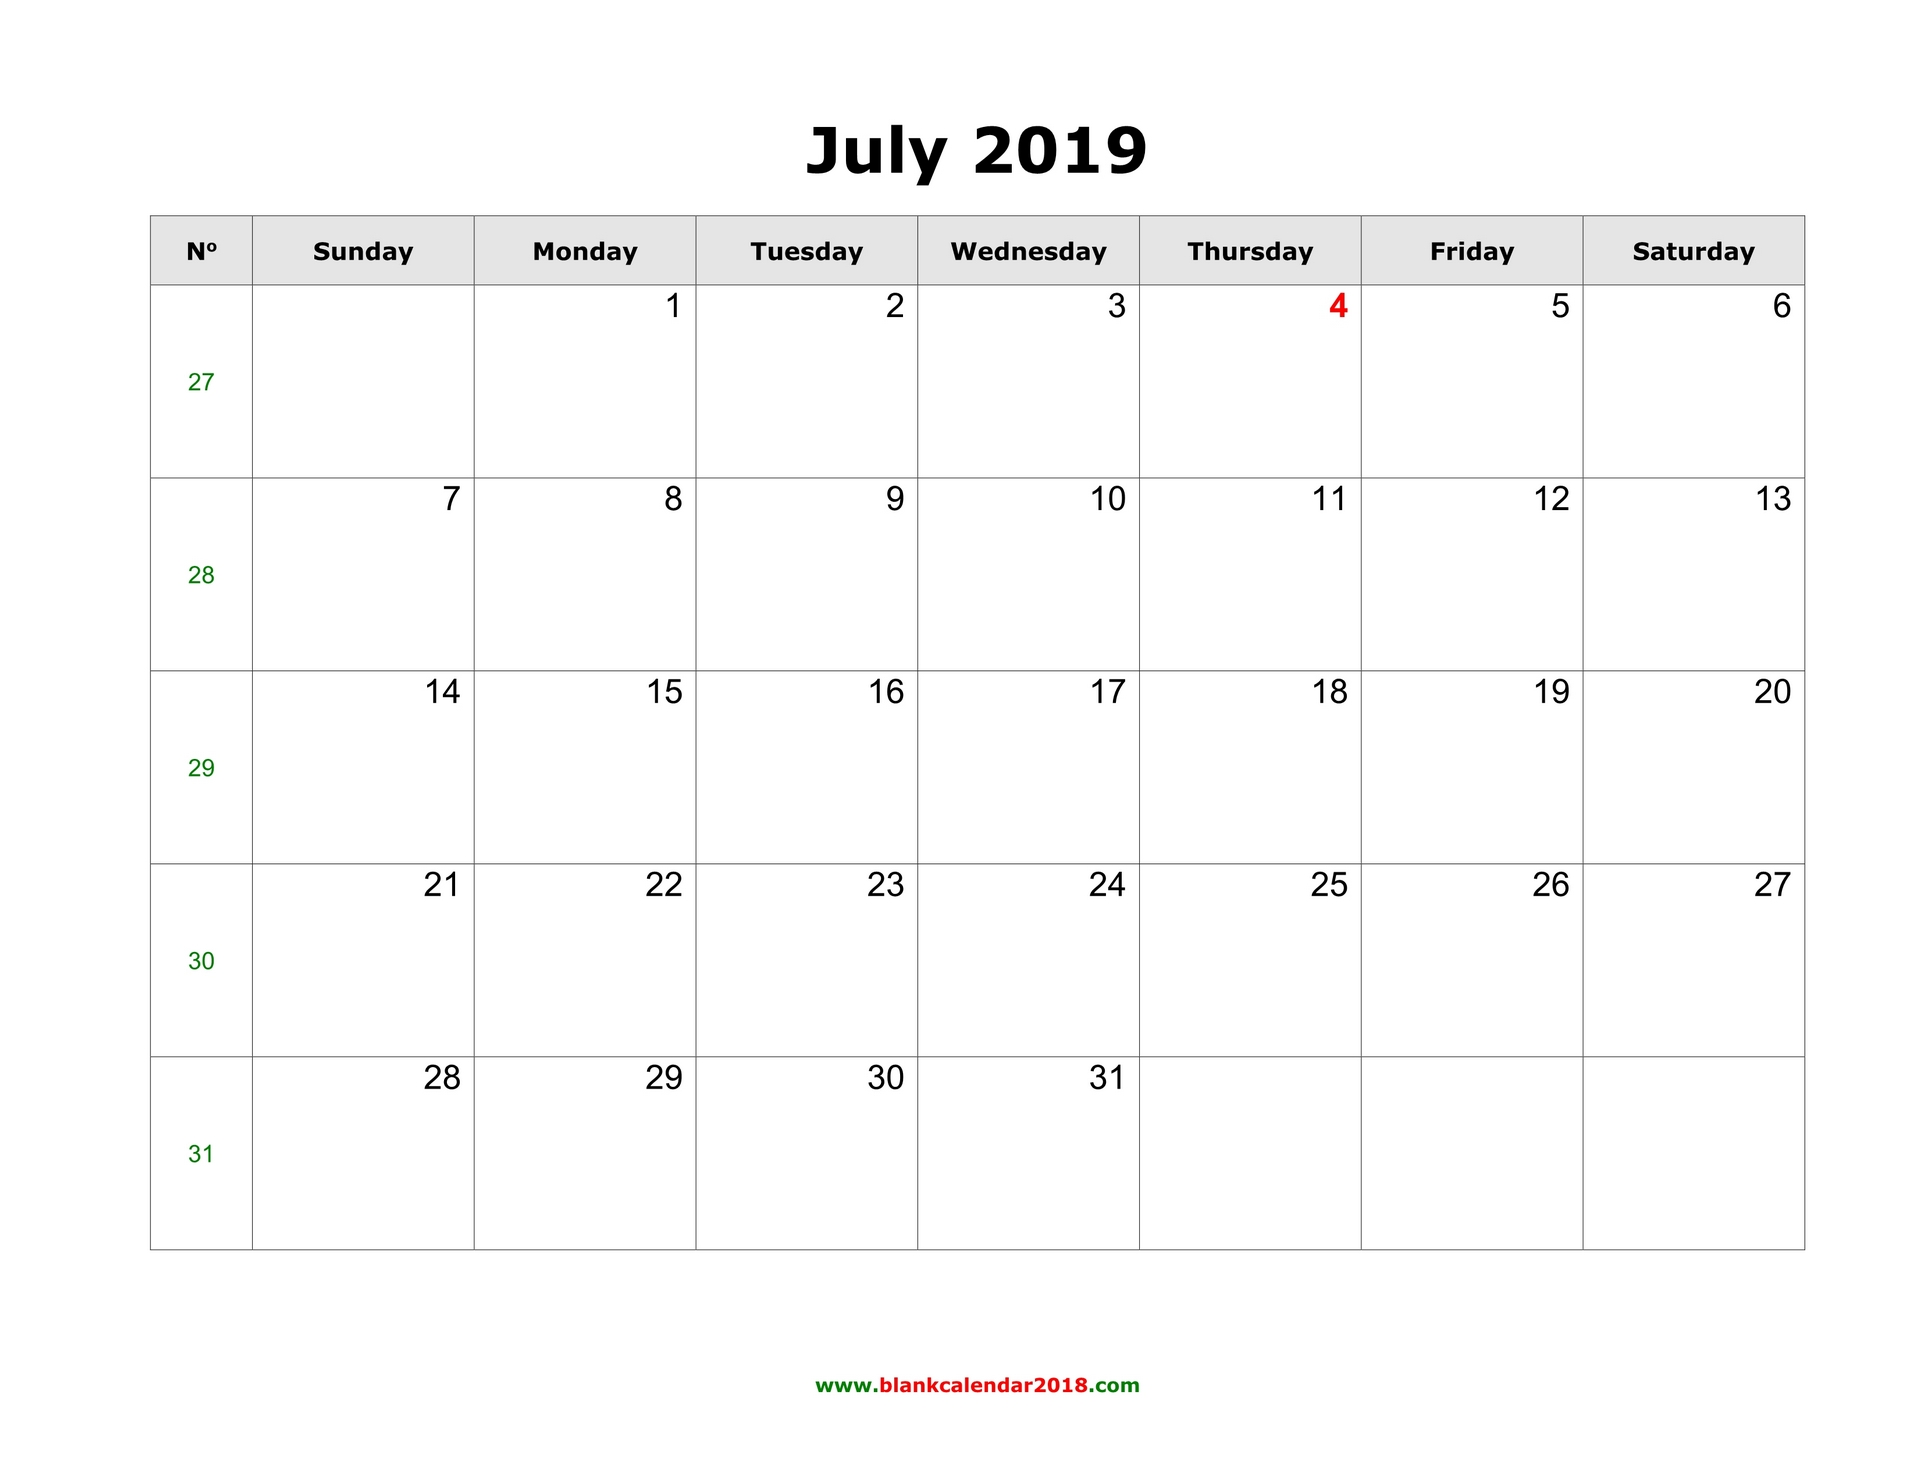 photograph relating to Calendar for July Printable referred to as Blank Calendar for July 2019